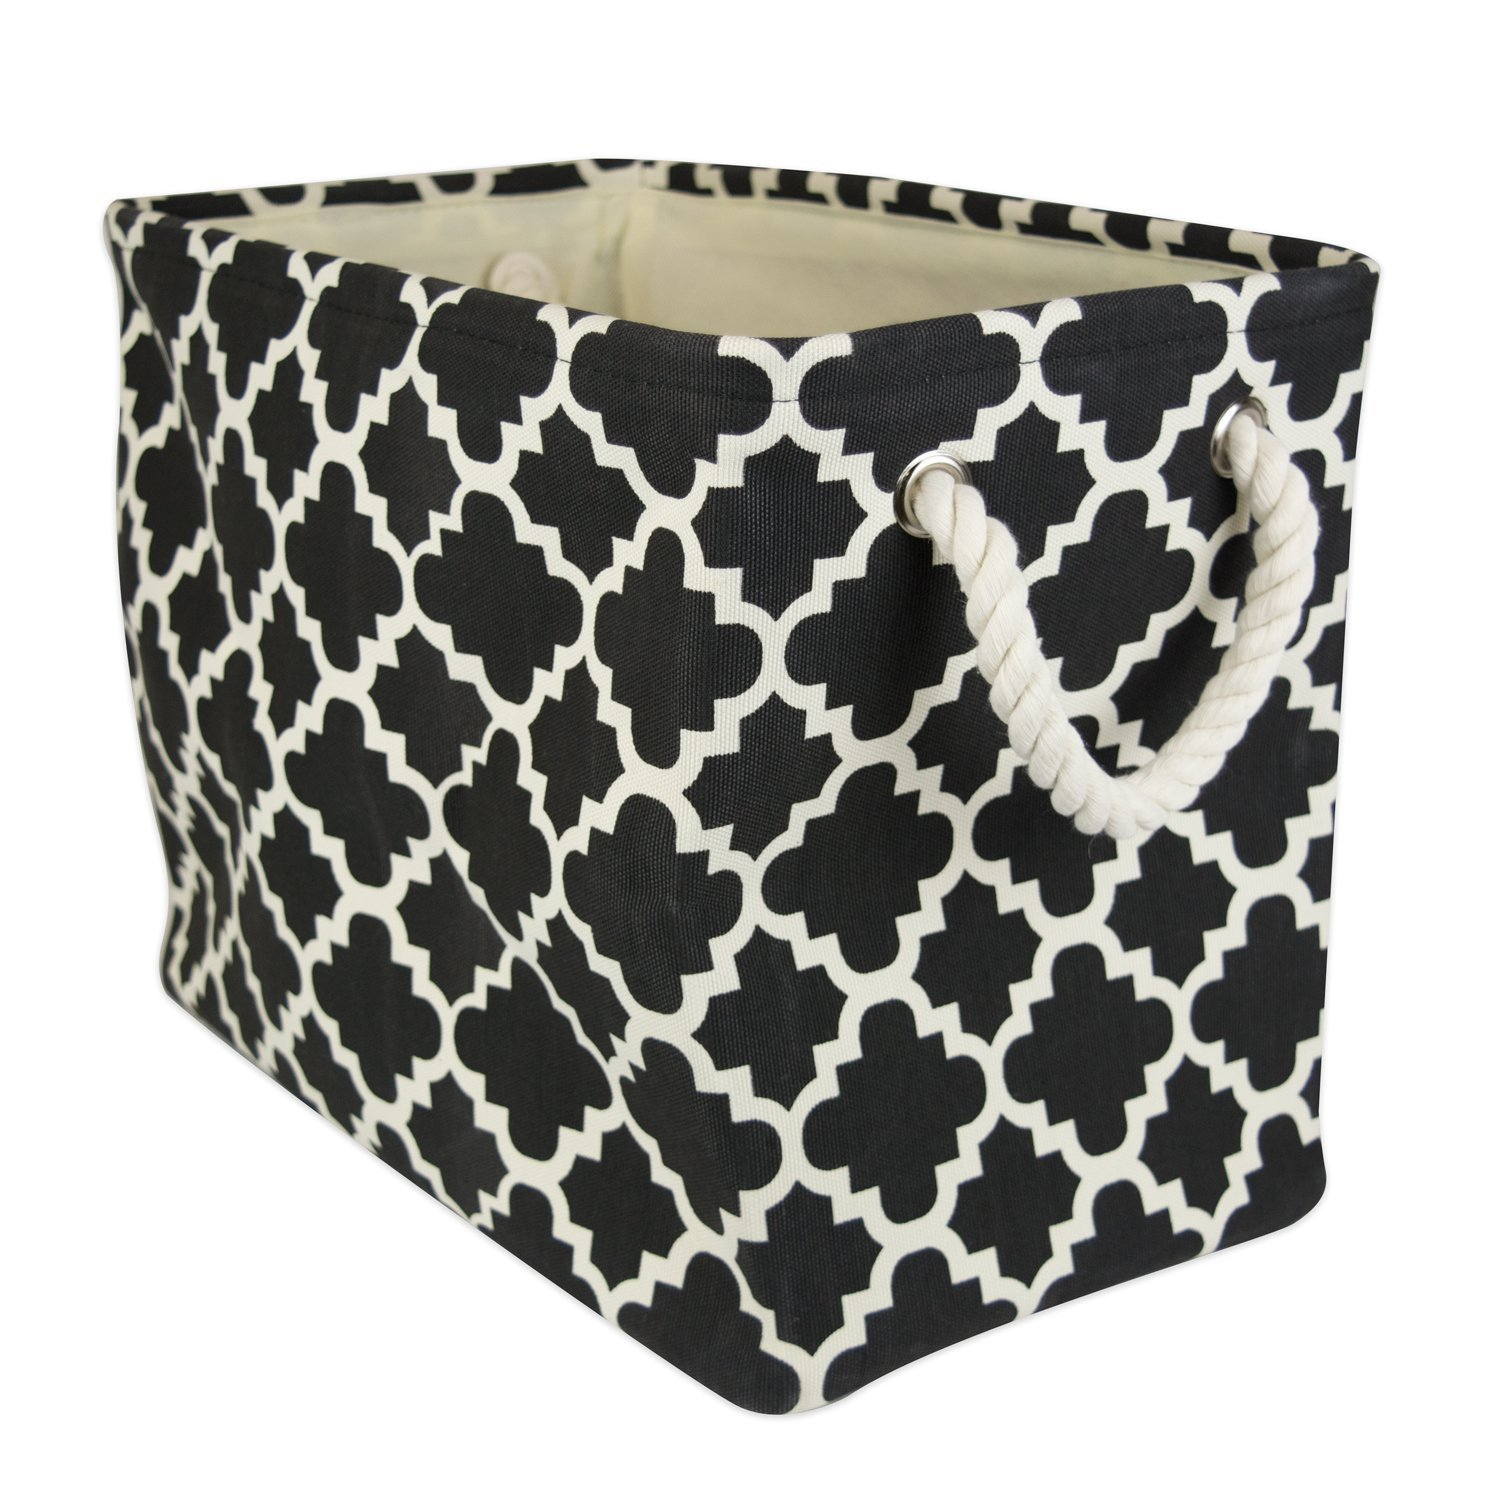 """DII Collapsible Polyester Storage Basket or Bin with Durable Cotton Handles, Home Organizer Solution for Office, Bedroom, Closet, Toys, & Laundry (Large – 17.75x12x15""""), Black Lattice"""